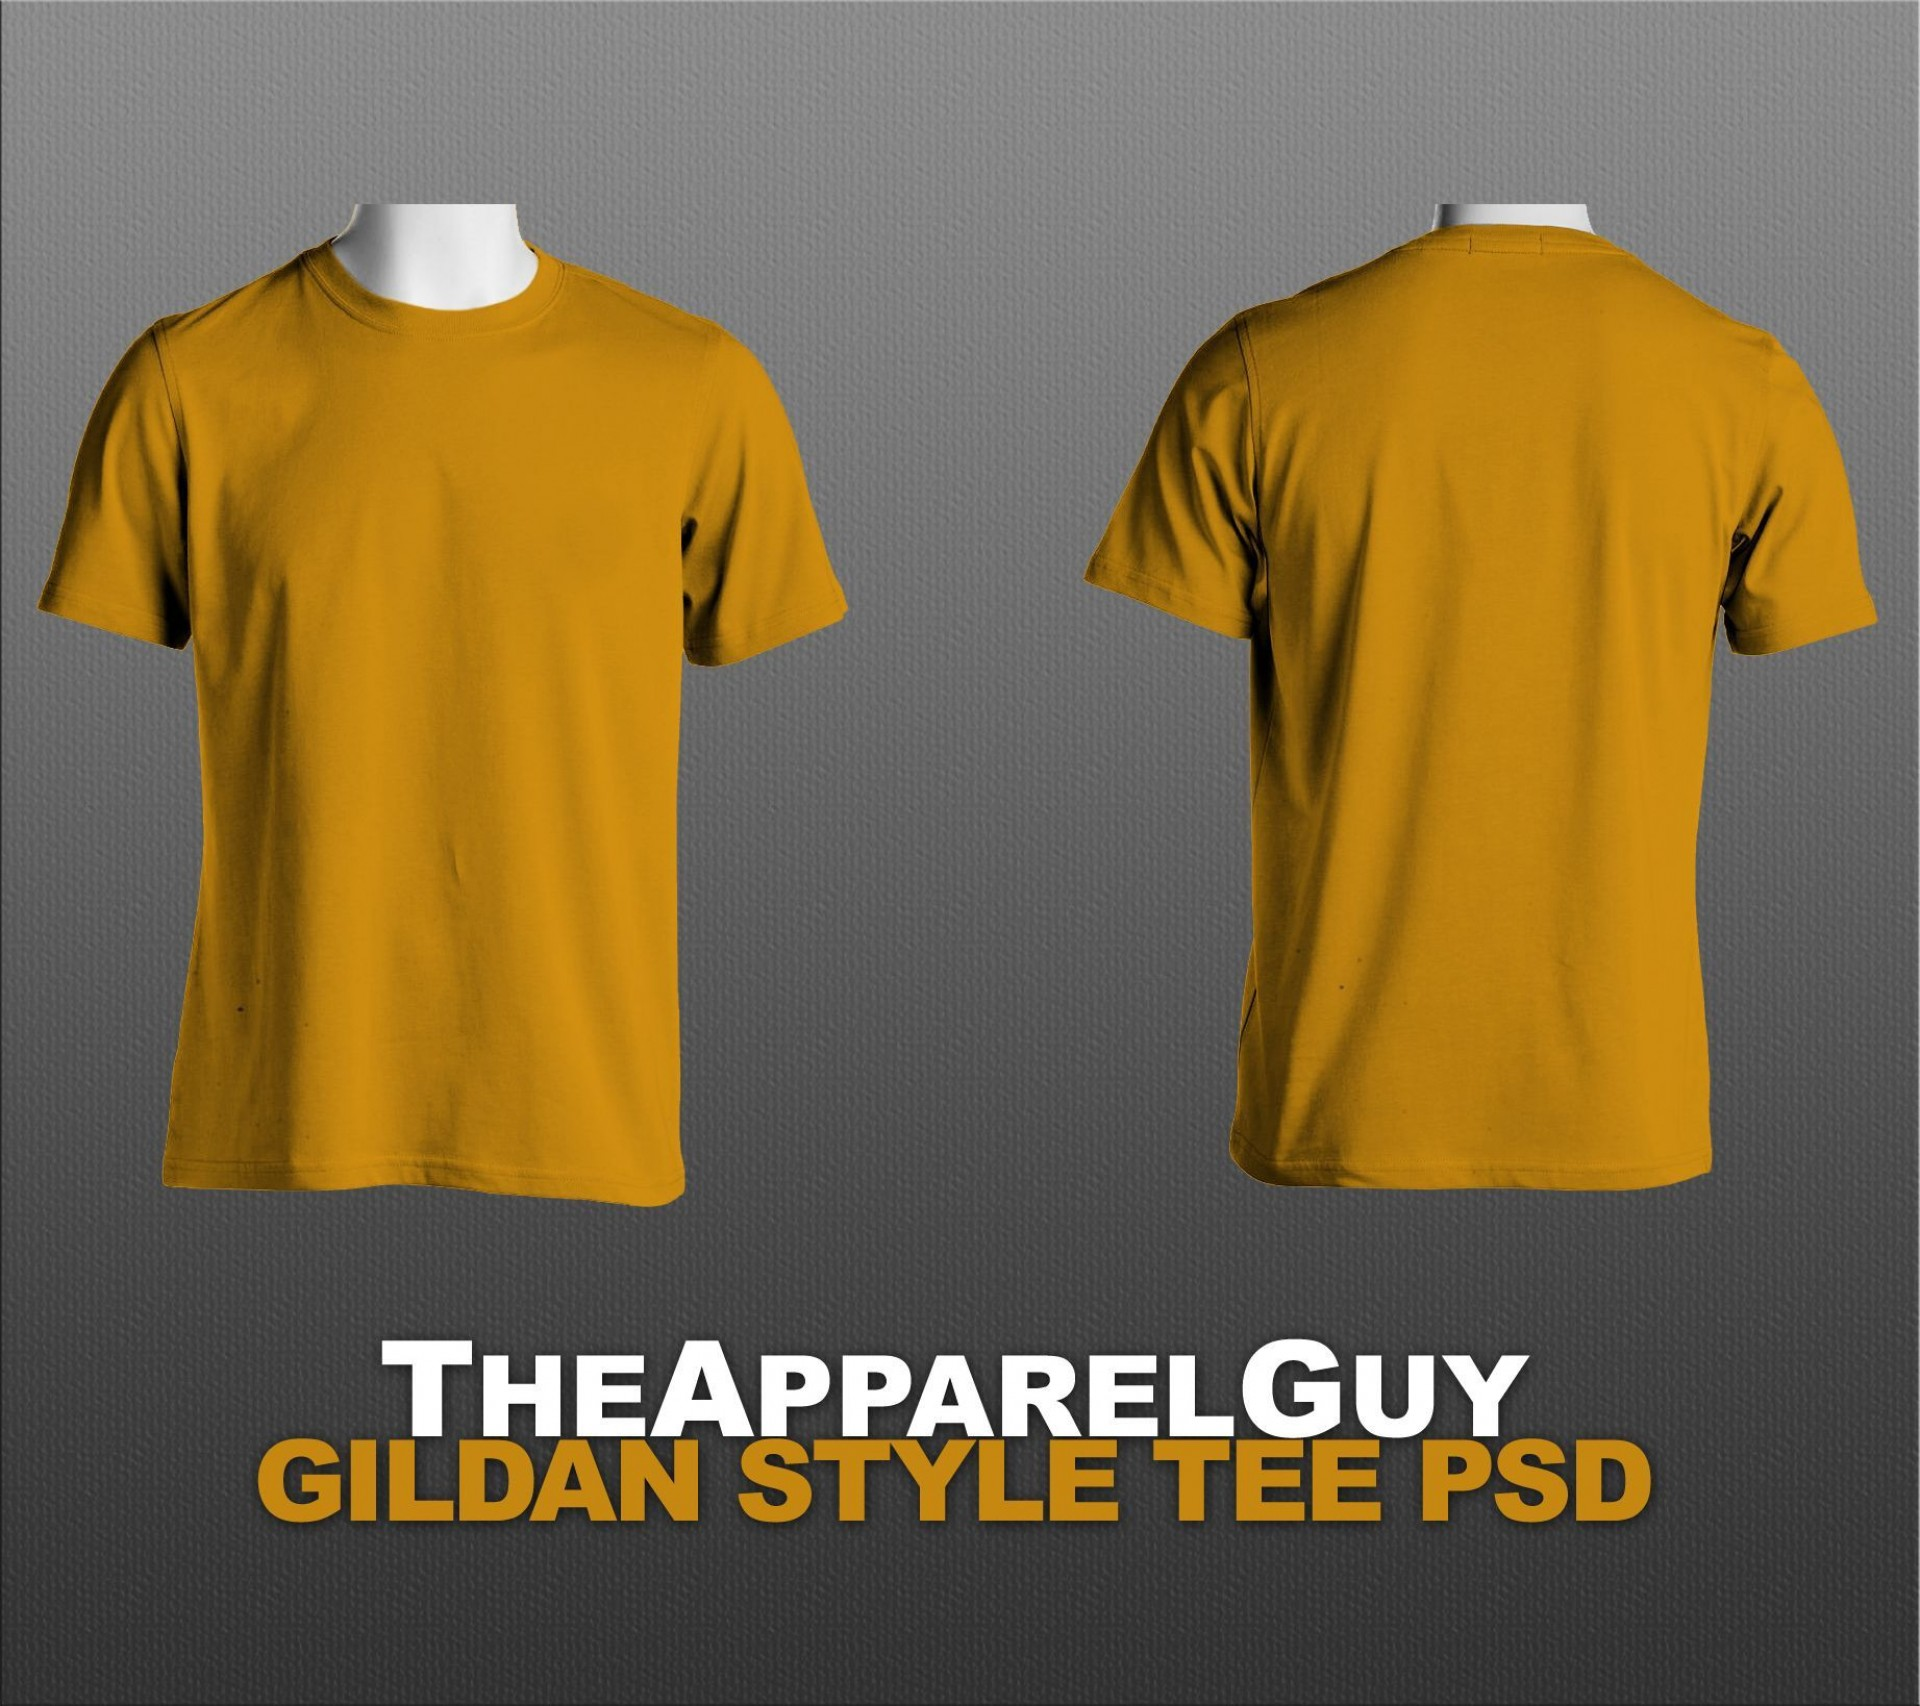 003 Breathtaking T Shirt Design Template Psd Picture  Blank T-shirt V Neck Photoshop Collar1920